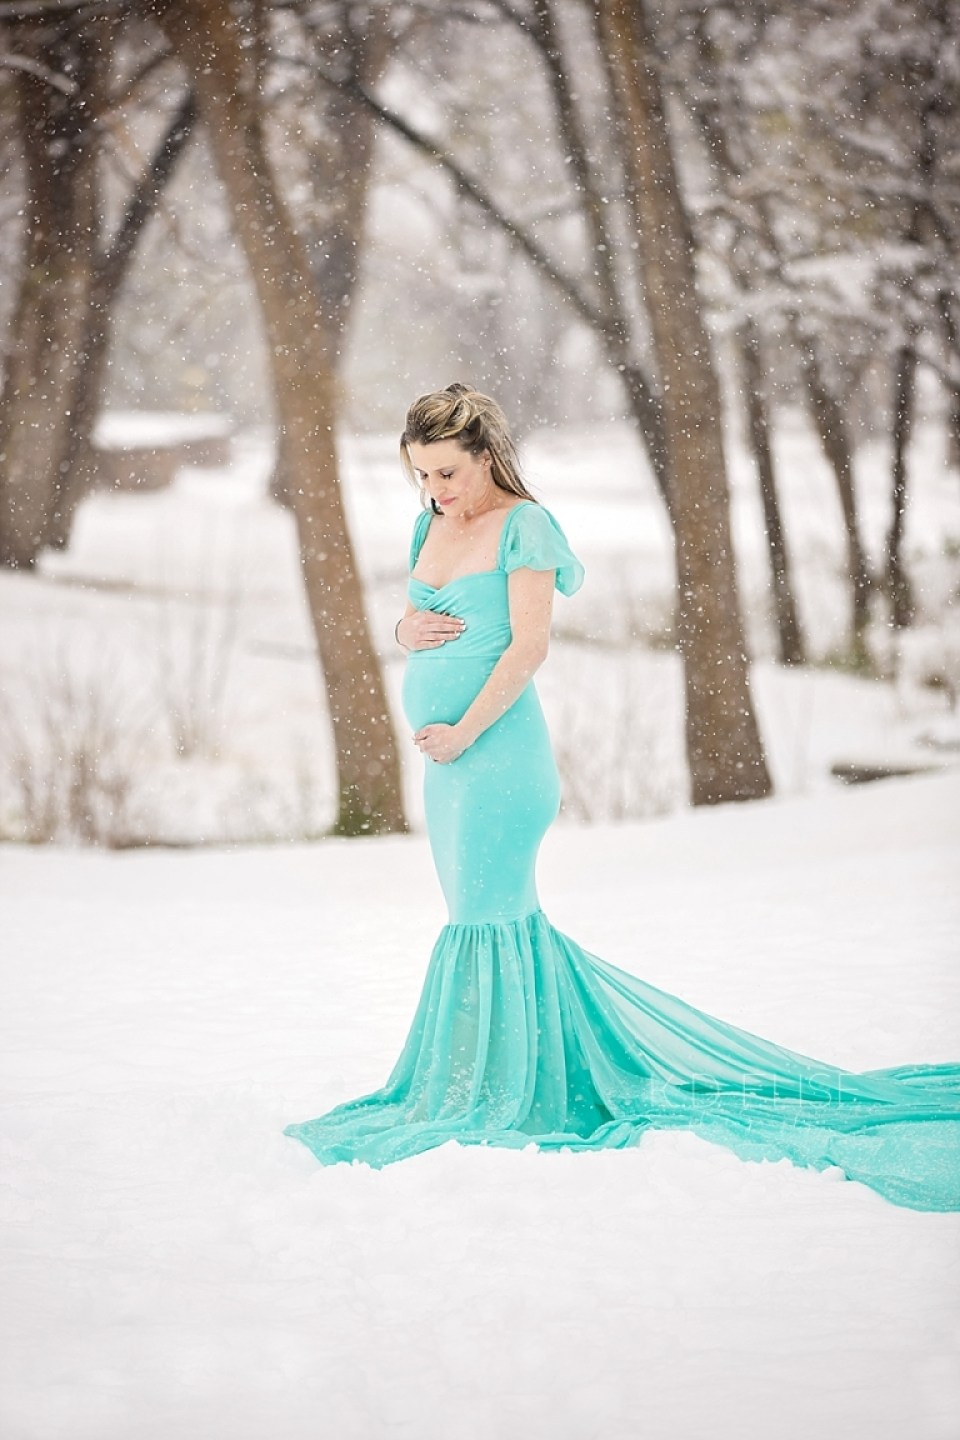 Pregnant mom standing in a snow covered forest during maternity session with Colorado Springs maternity photographer K.D. Elise Photography.